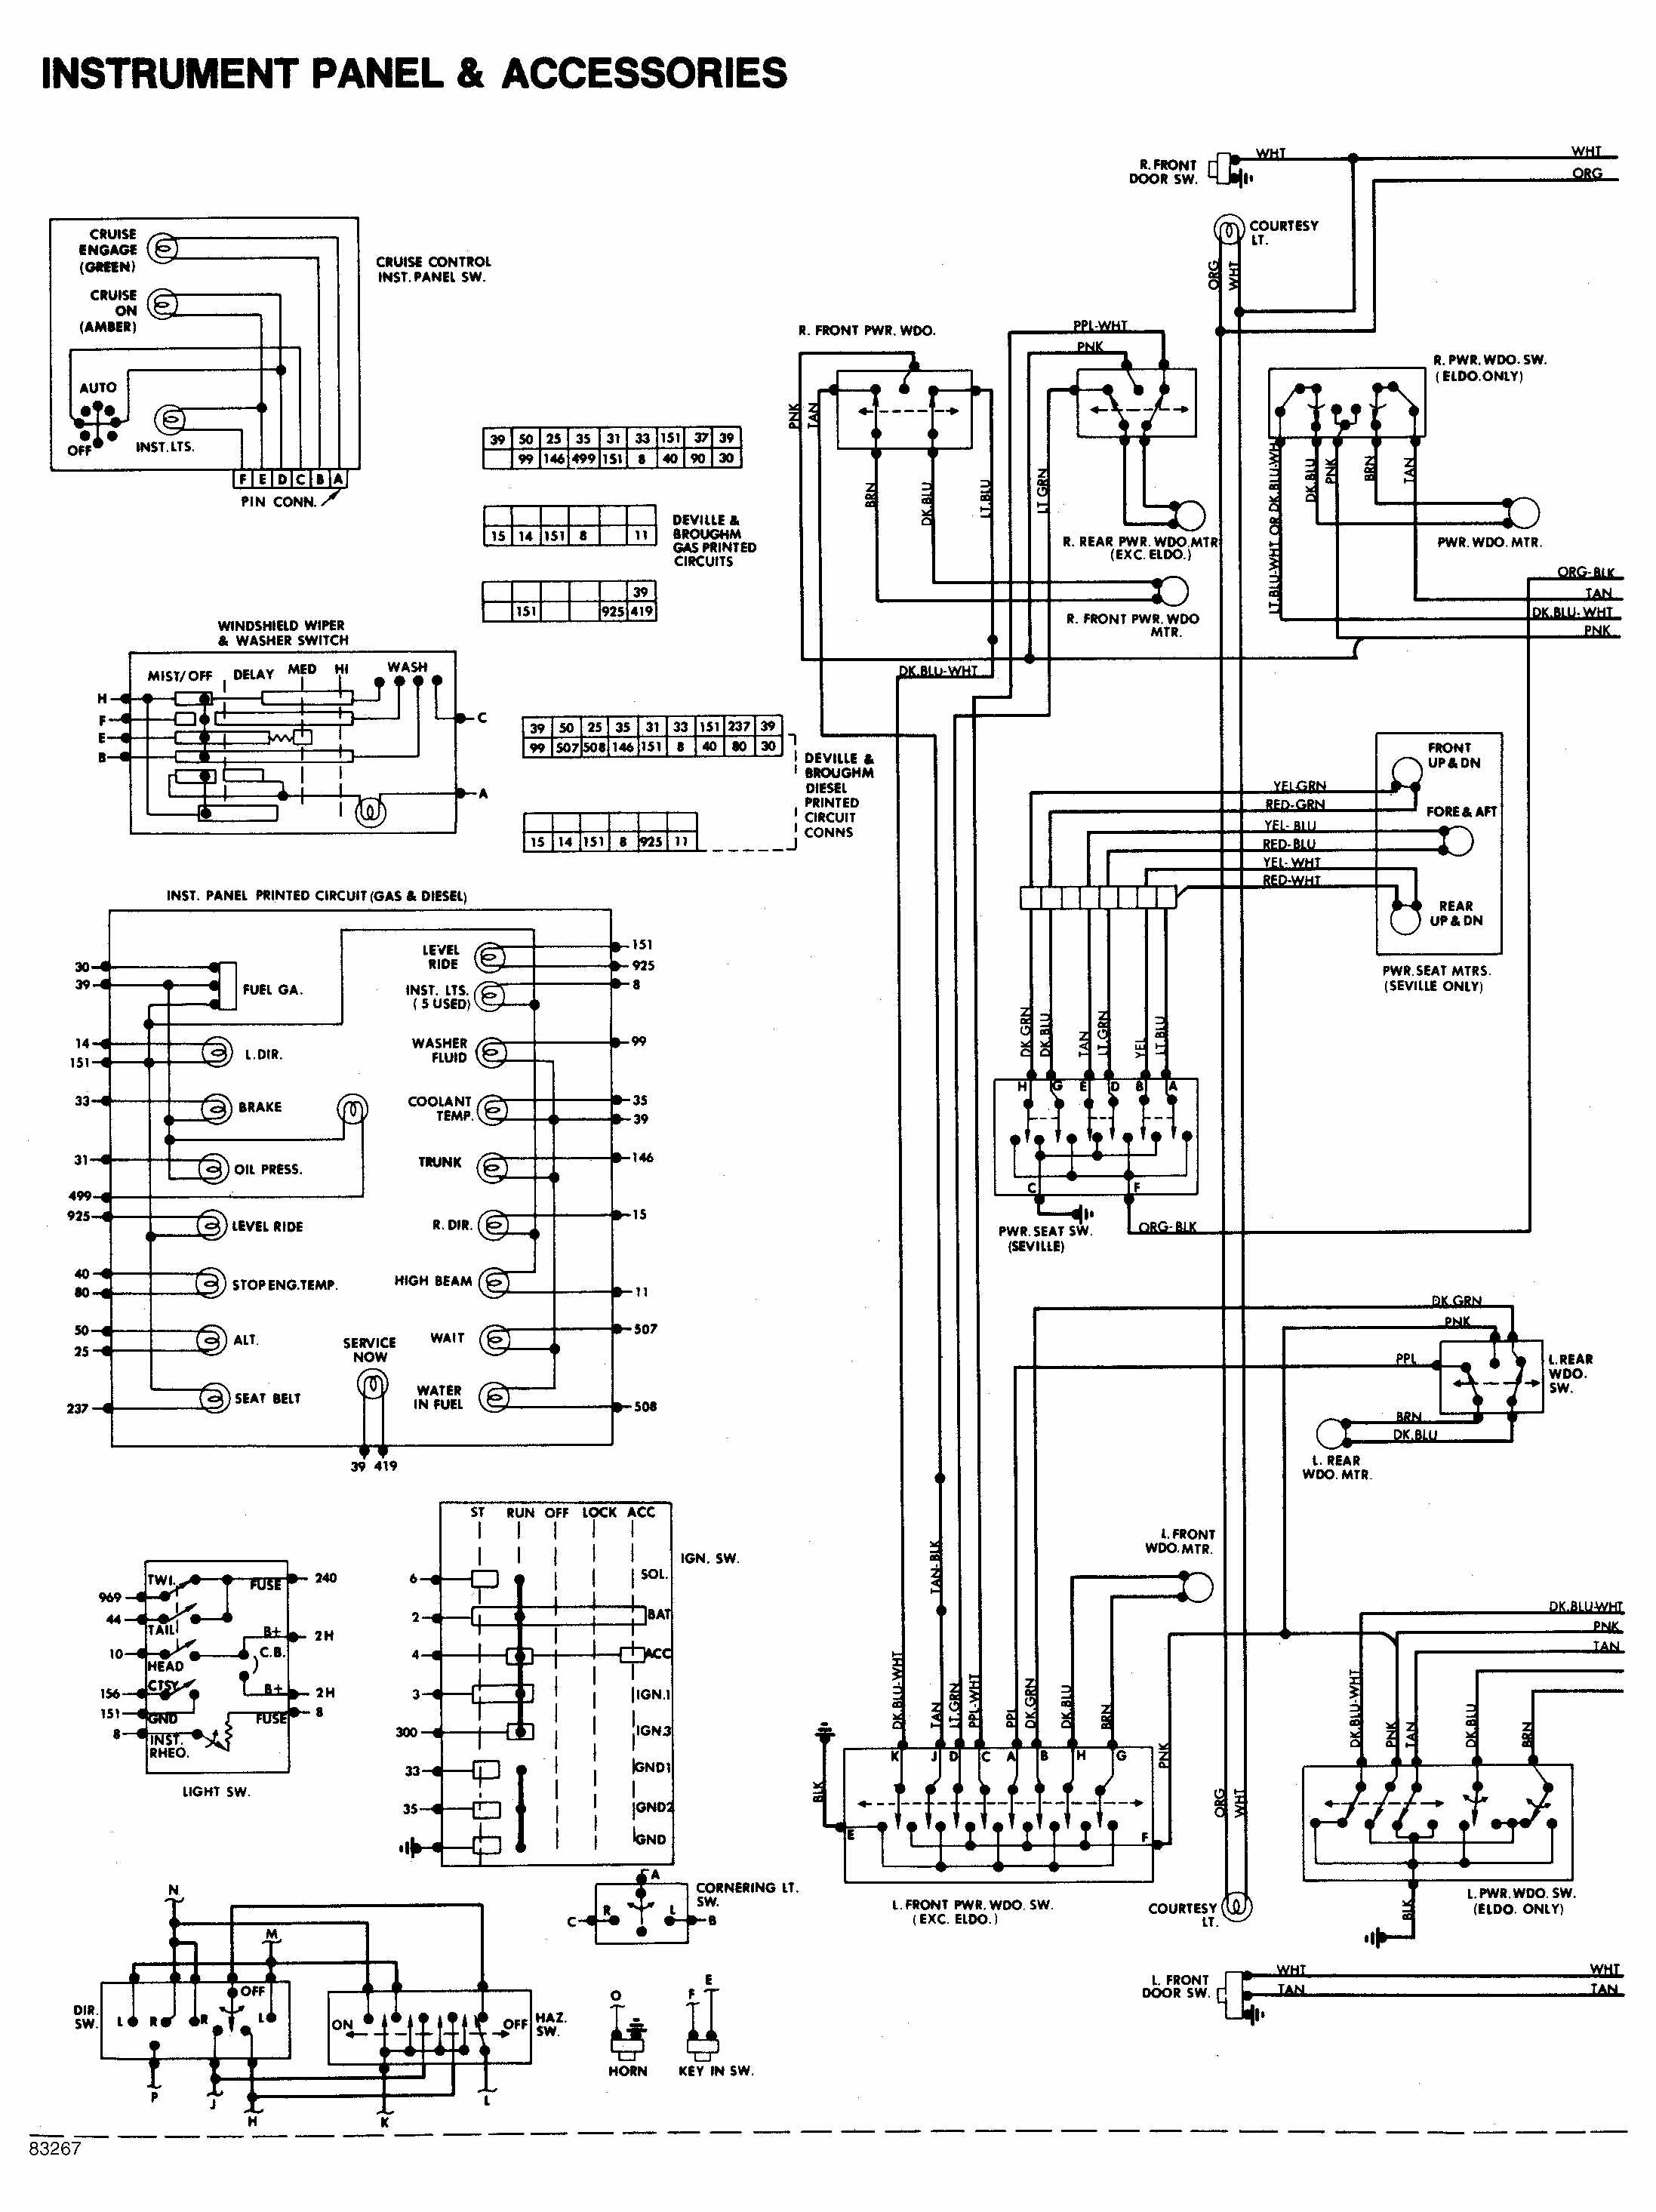 instrument panel and accessories wiring diagram of 1984 cadillac deville cadillac wiring harness ram truck wiring harness \u2022 wiring diagrams  at nearapp.co